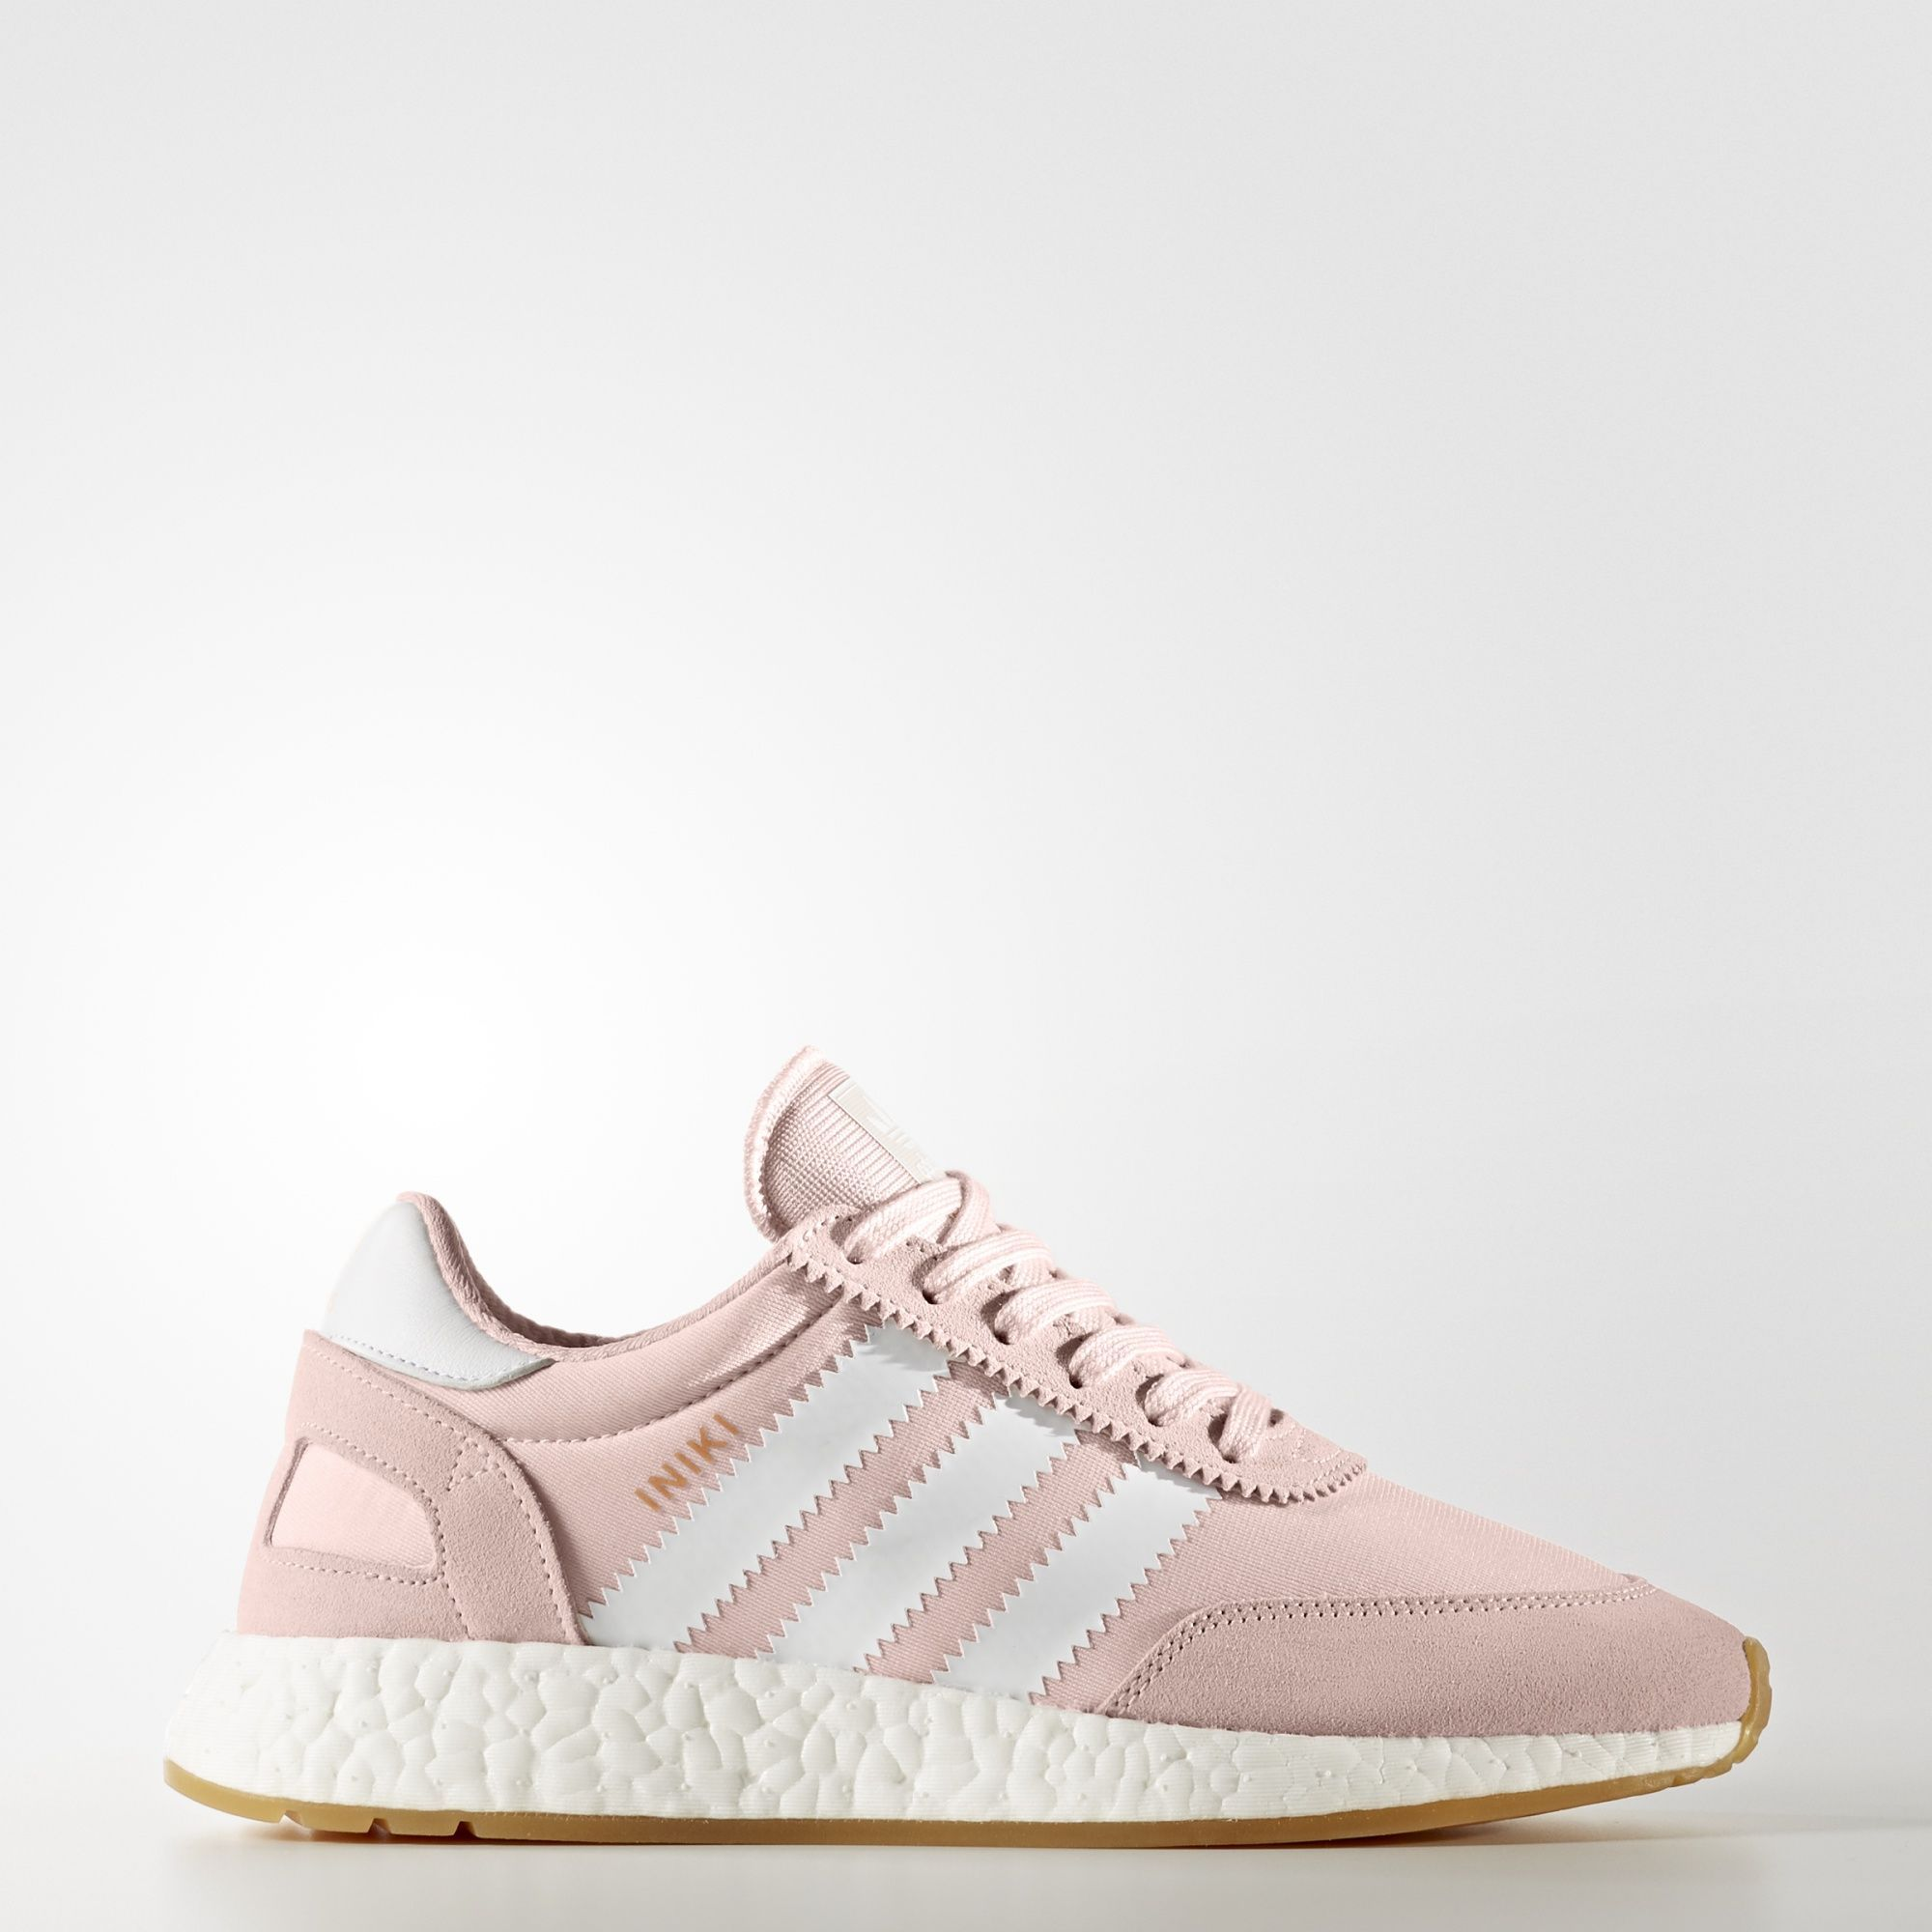 For all you pale wave dudes out there, these upcoming iniki boost in rose  just got announced